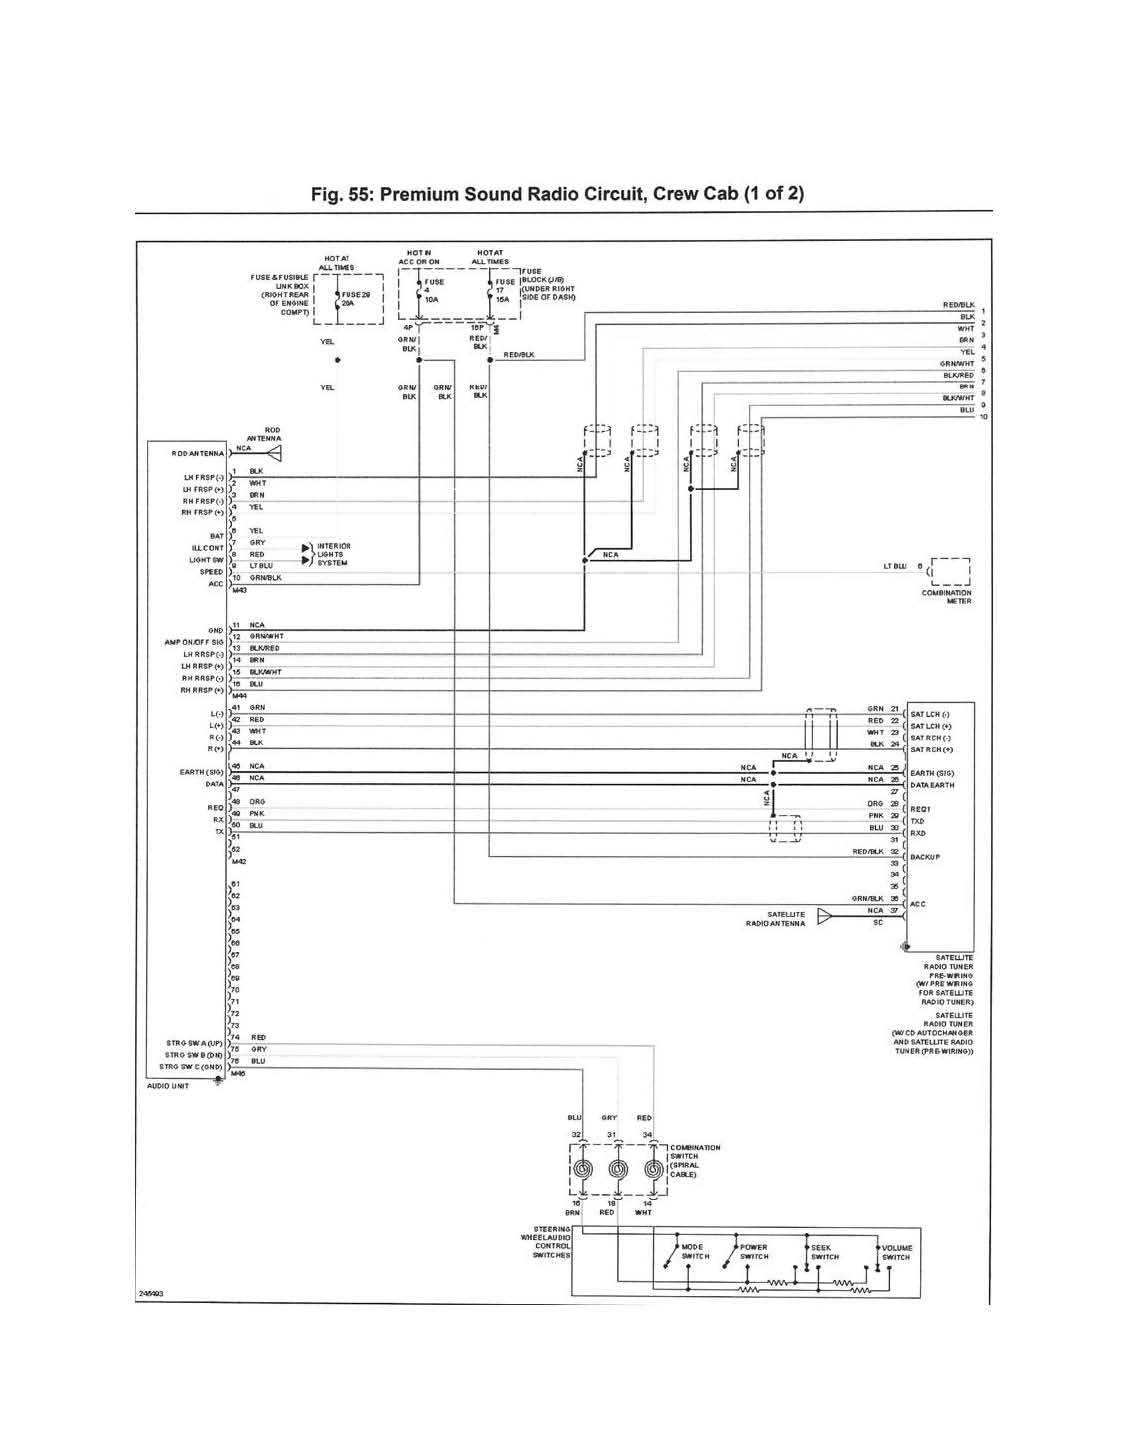 2011 01 02_232311_nissan_wiring_page_1 i have a 2005 nissan frontier crew cab w rockford fosgate system GM Radio Wiring Diagram at bayanpartner.co